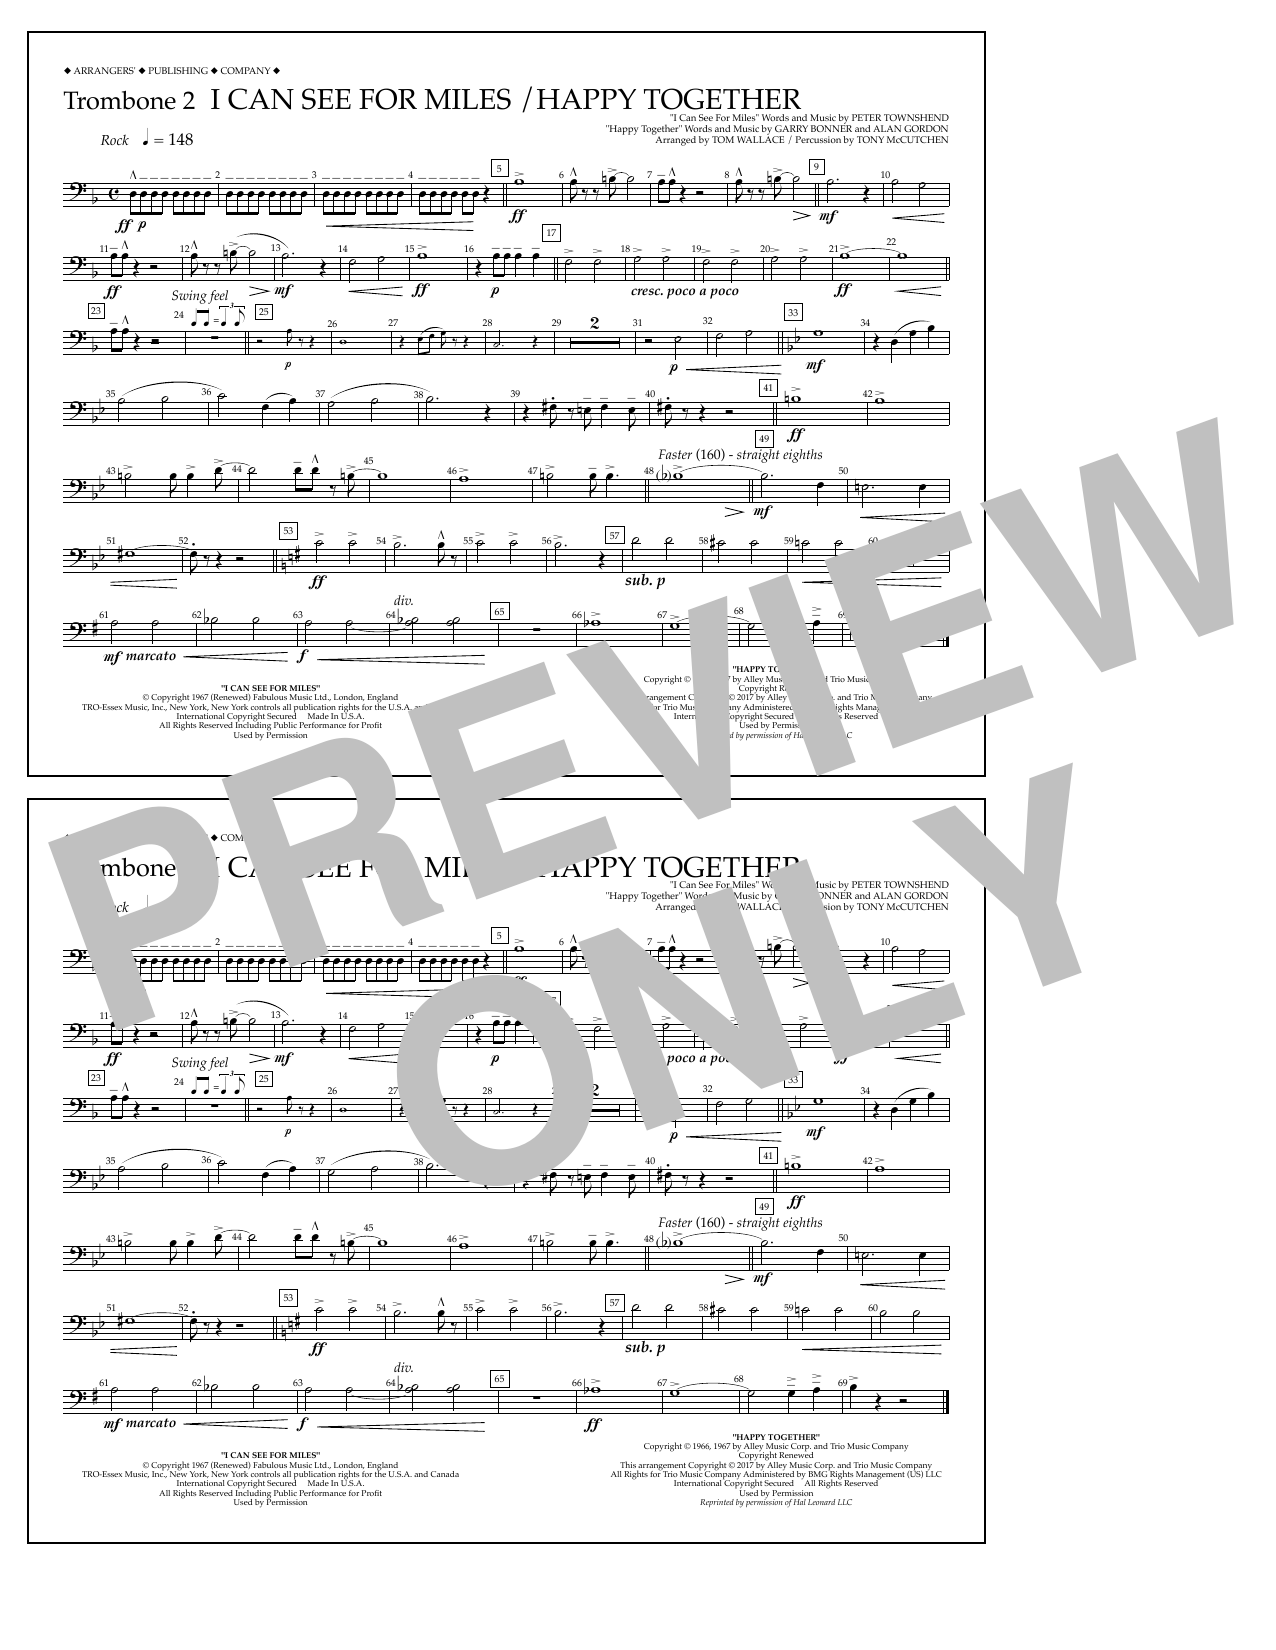 I Can See for Miles/Happy Together - Trombone 2 Sheet Music